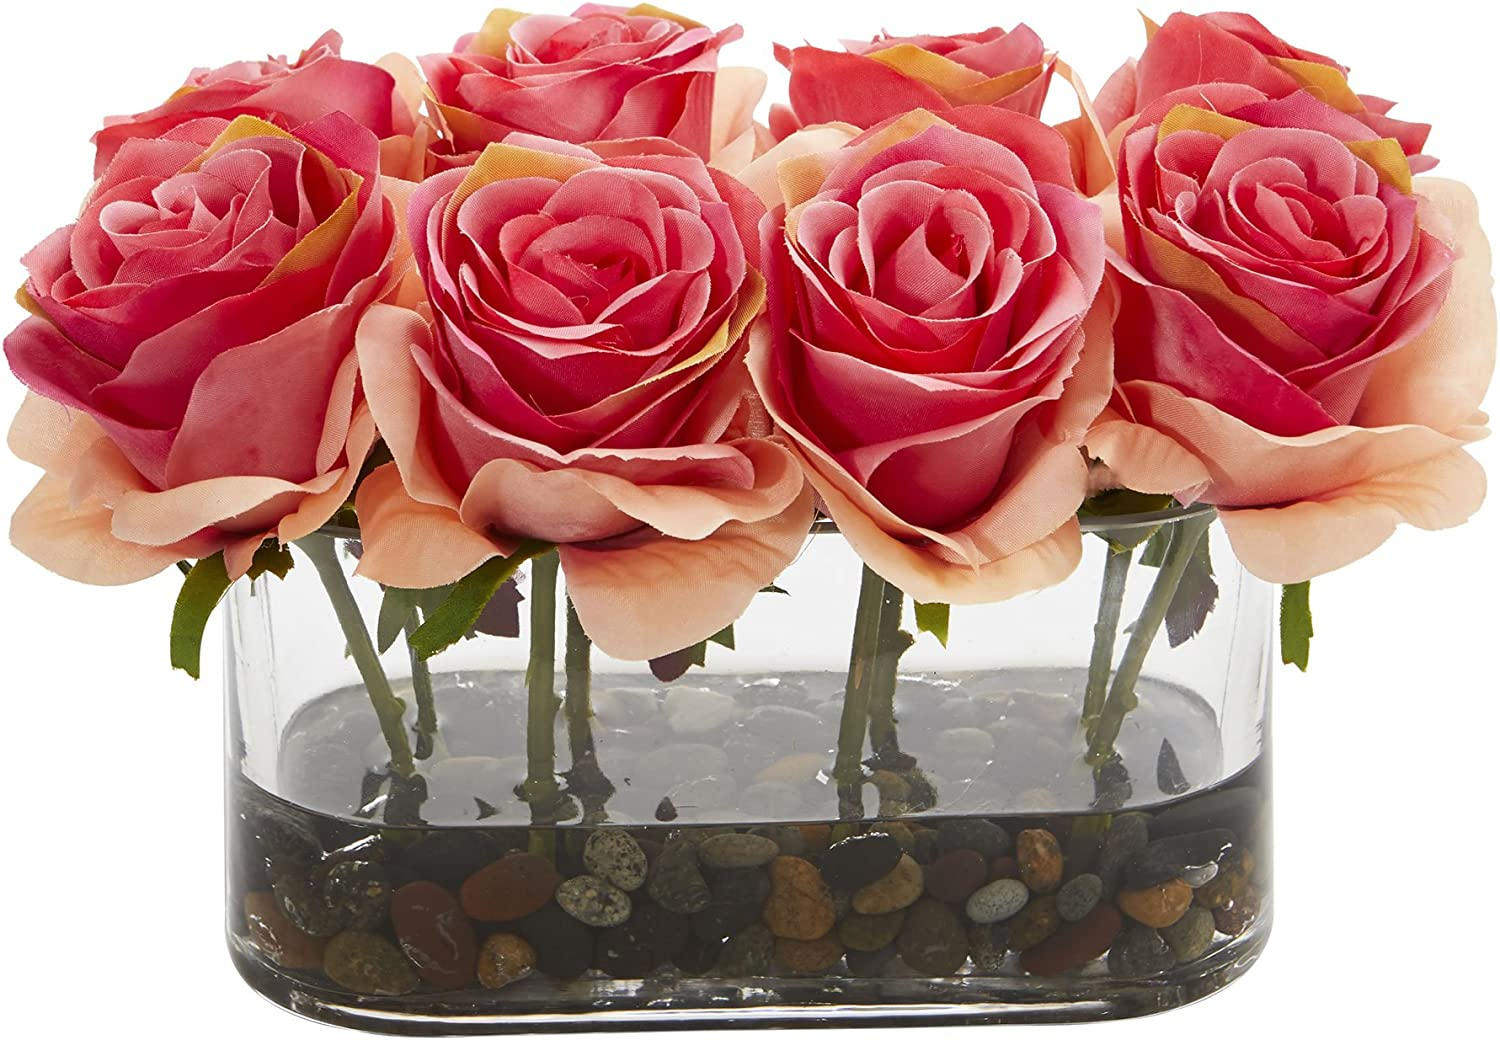 Nearly Our shop OFFers the best Rapid rise service Natural 5 ' 1 Blooming Roses Glass Vase 5.5